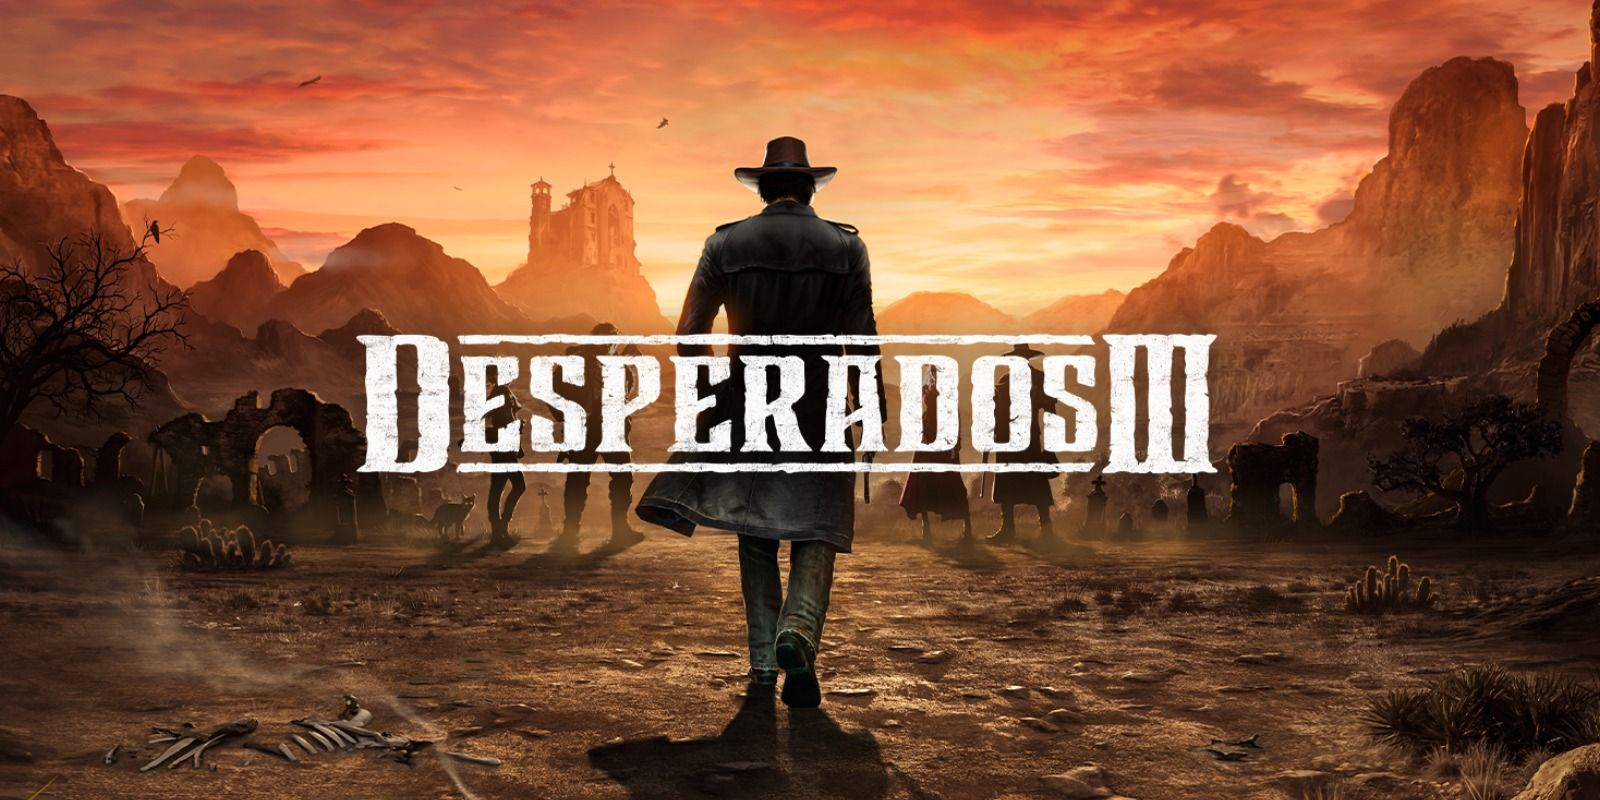 Desperados Iii Tips Tricks Strategies For New Players Cbr